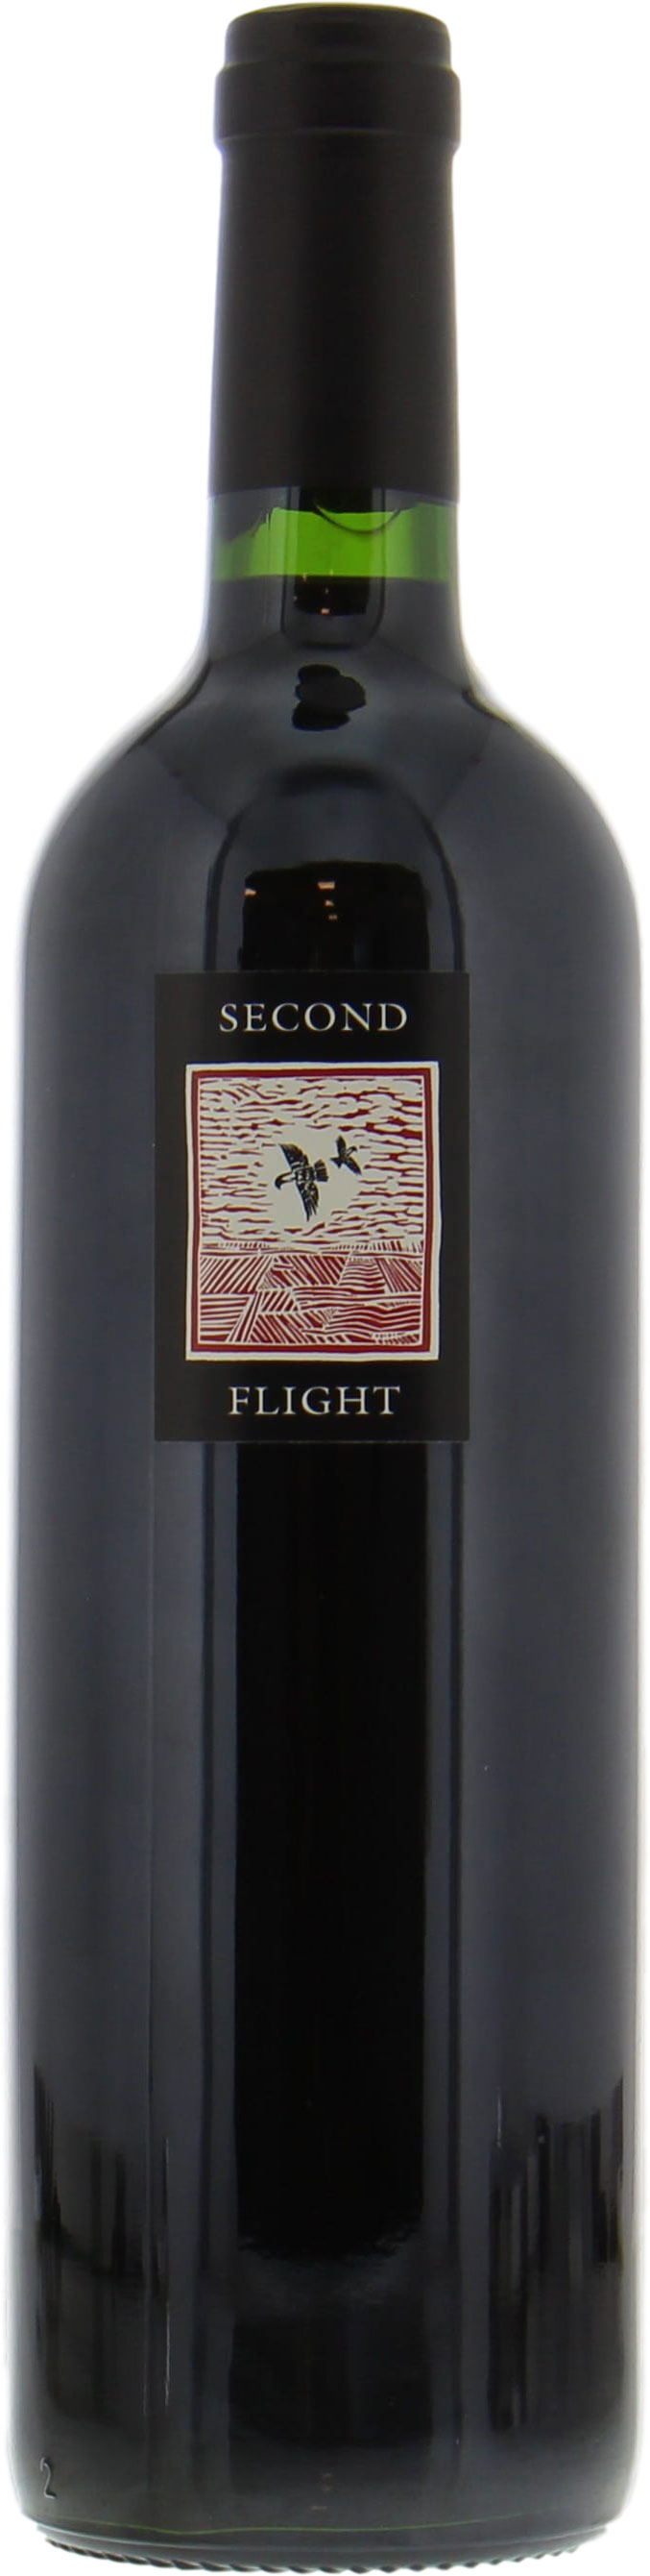 Screaming Eagle - Second Flight 2013